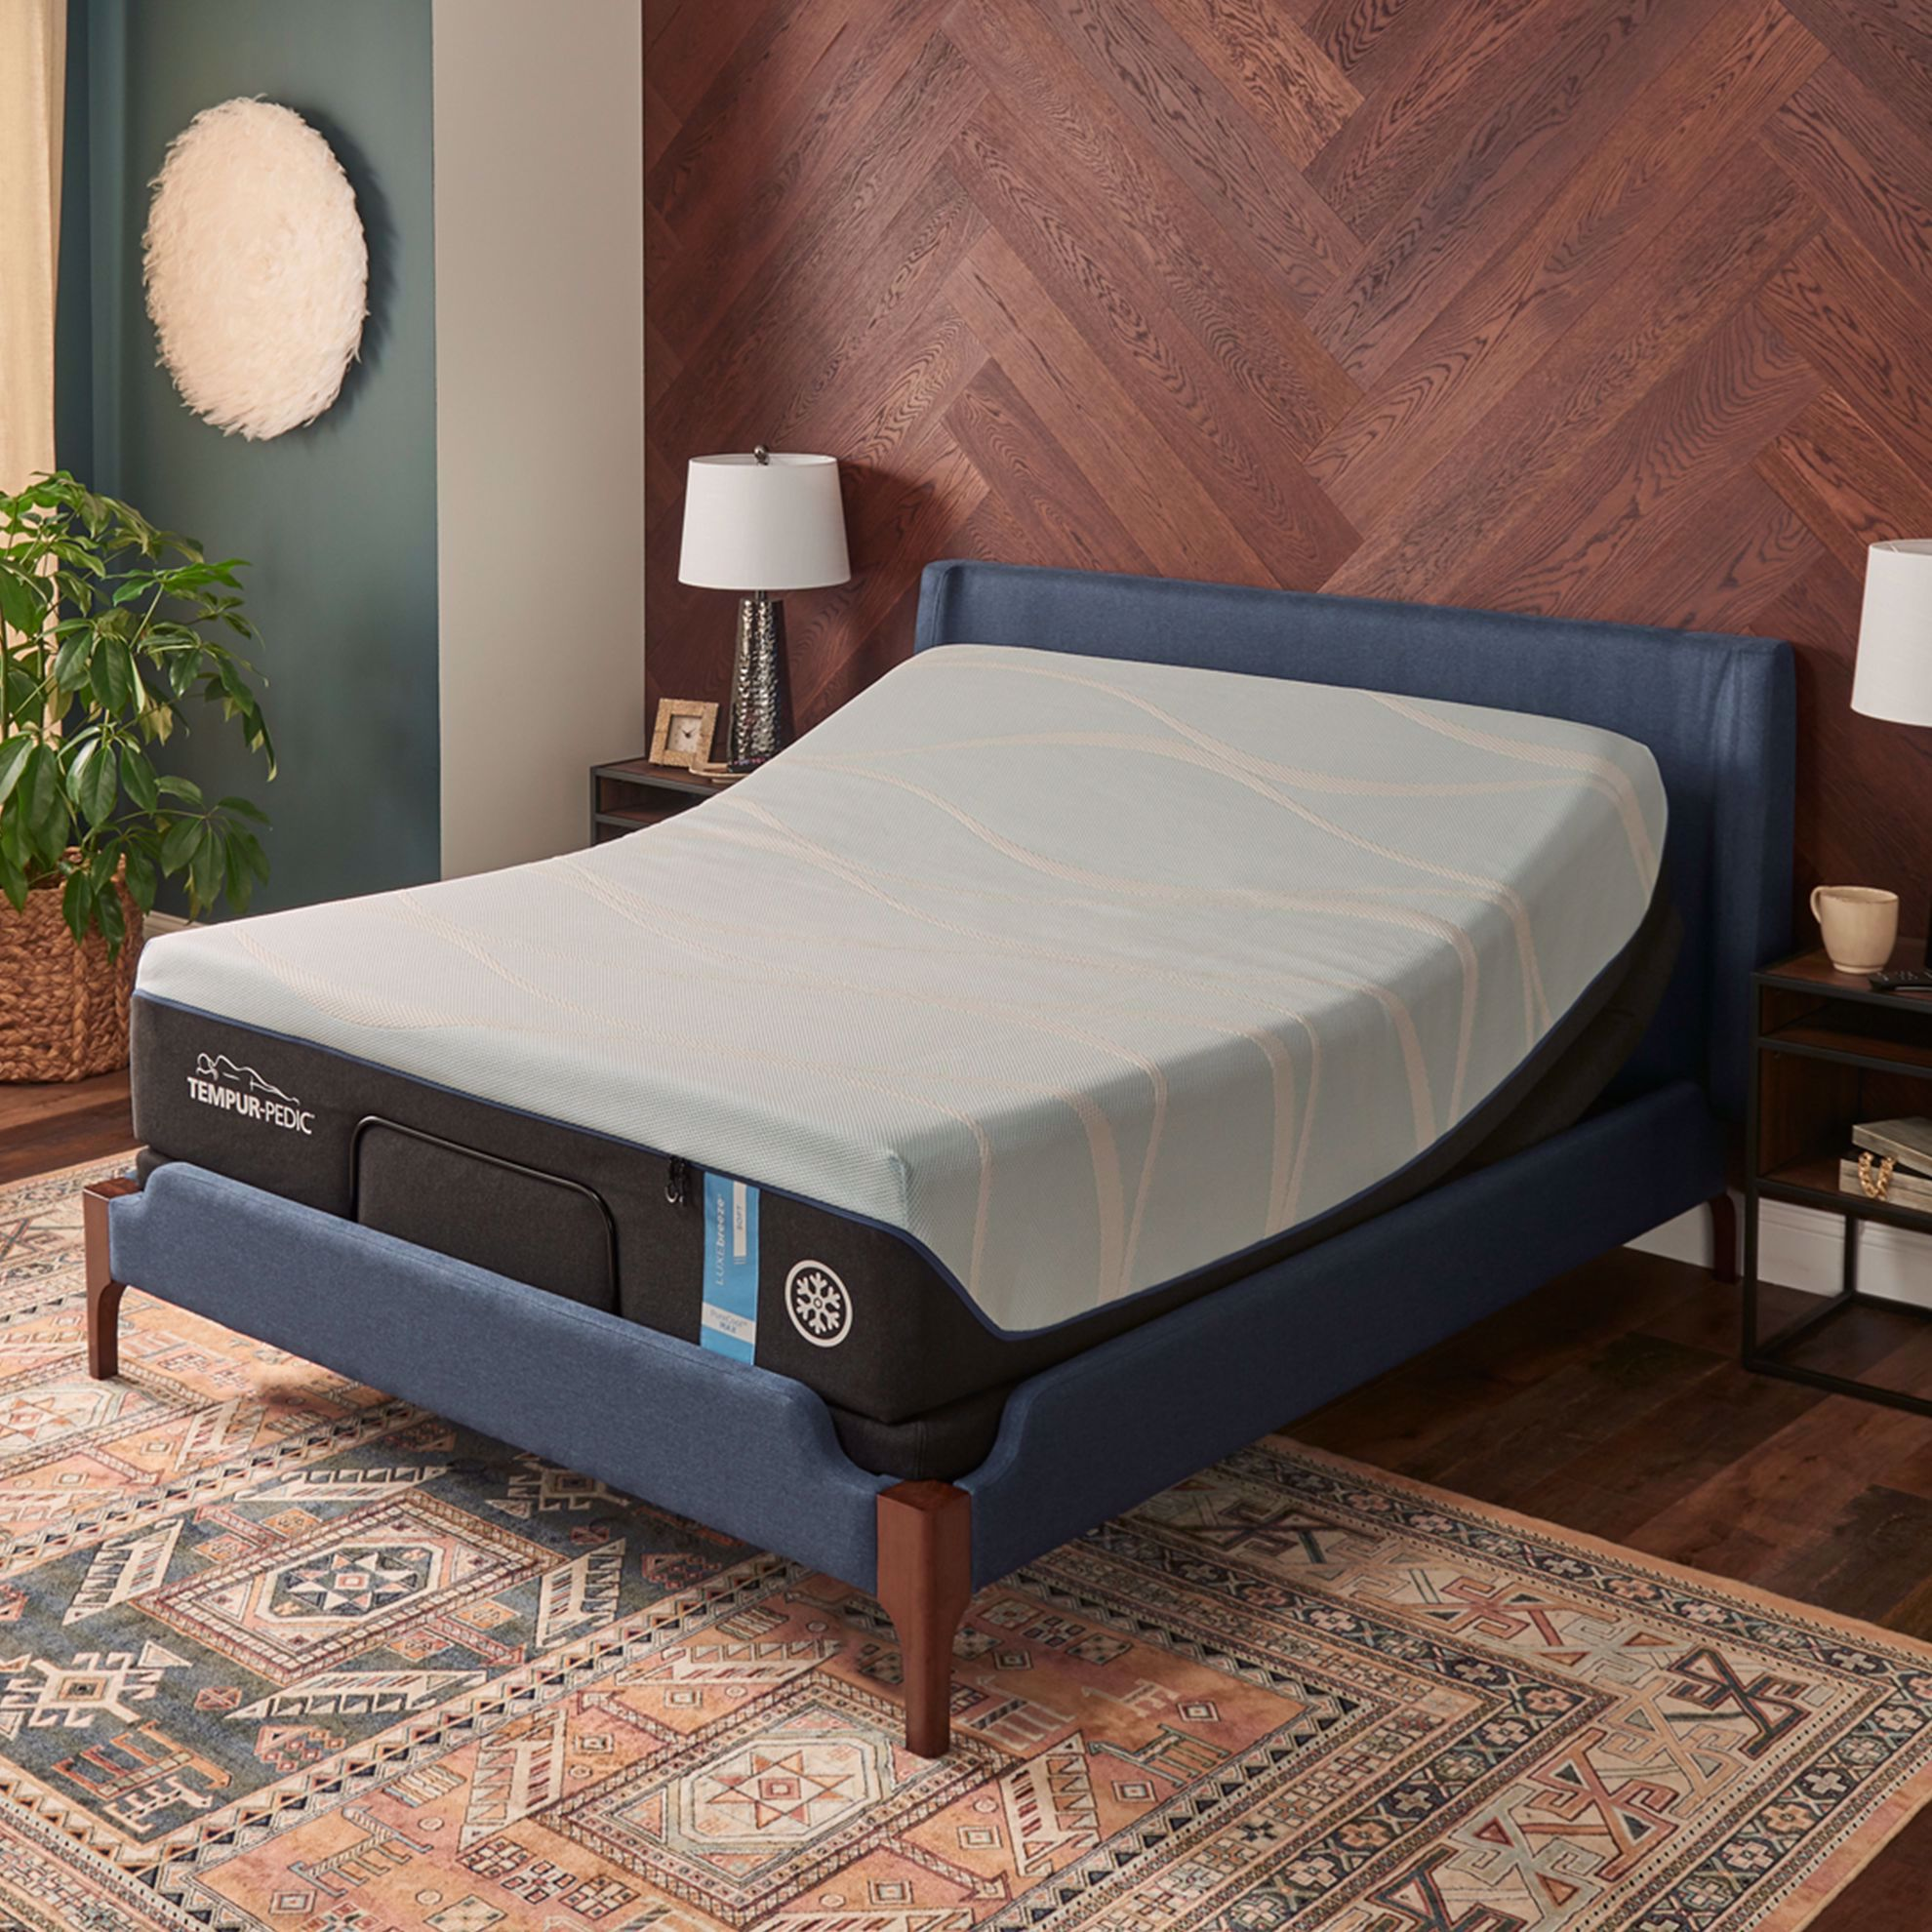 Picture of Tempur-Pedic Ergo California King Adjustable Base